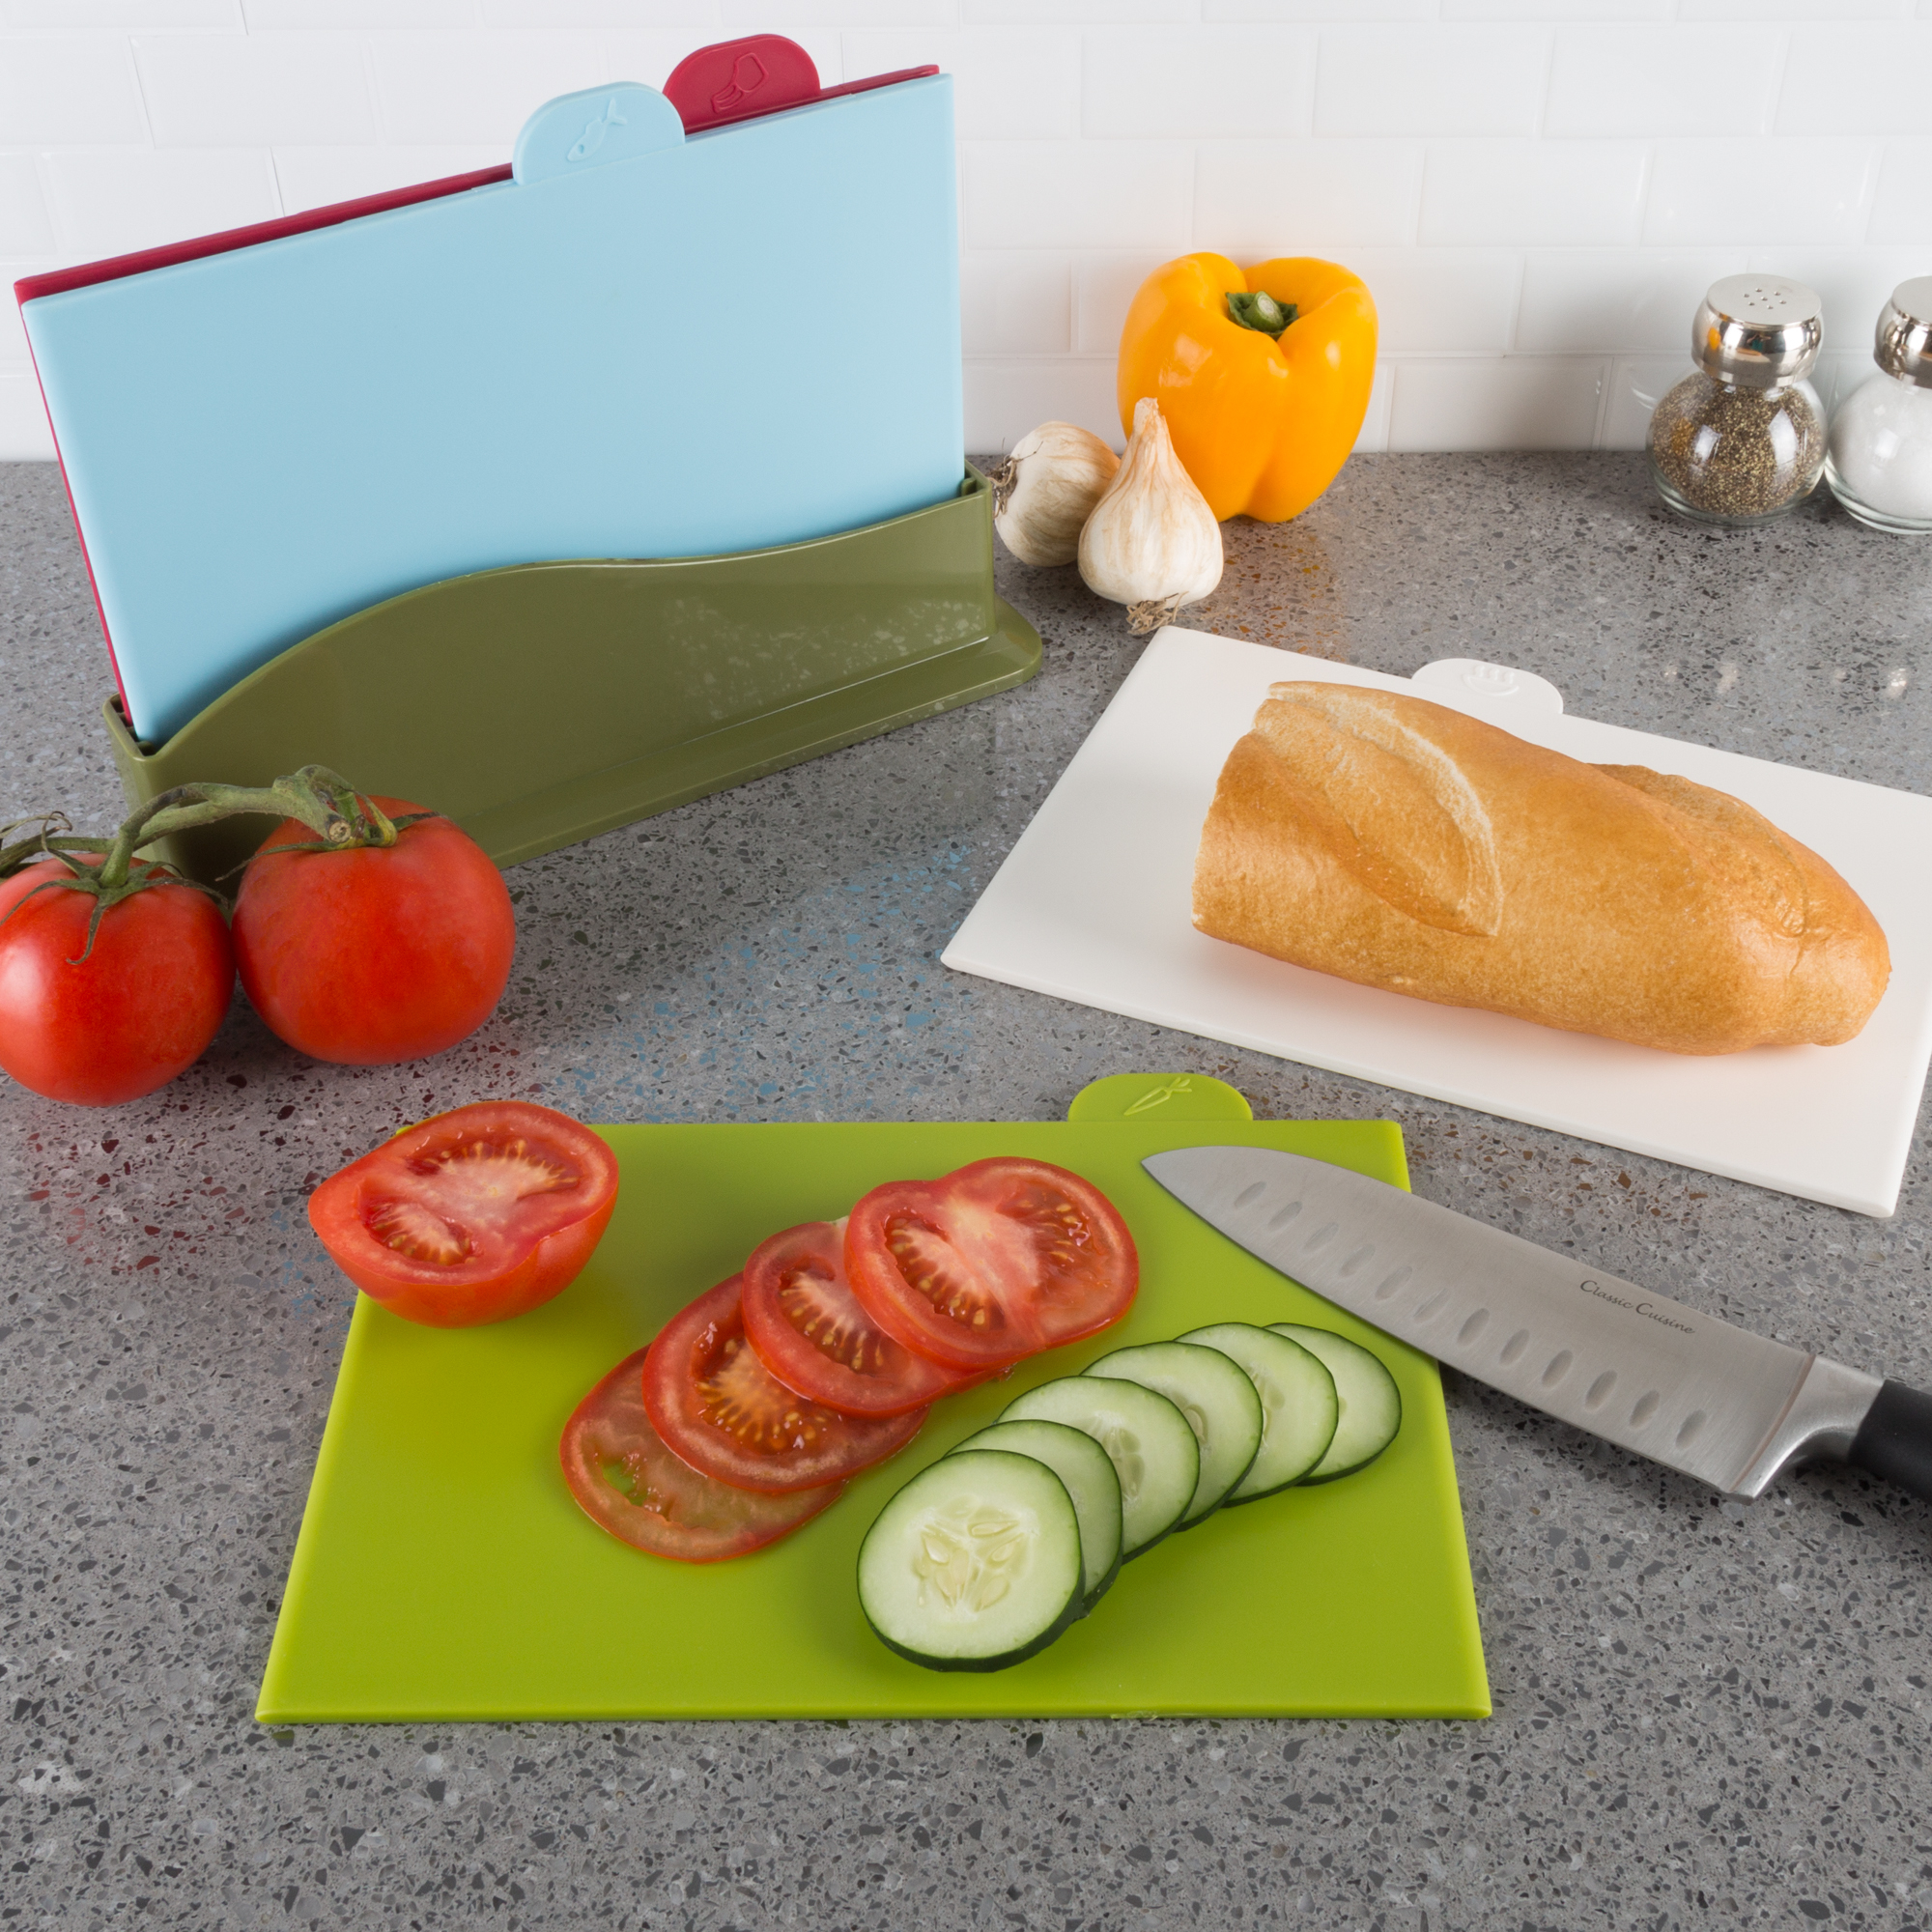 Plastic Cutting Board Set 4 Color Coded Boards Dual Sided FDA Approved Easy Access Counter Space Saver